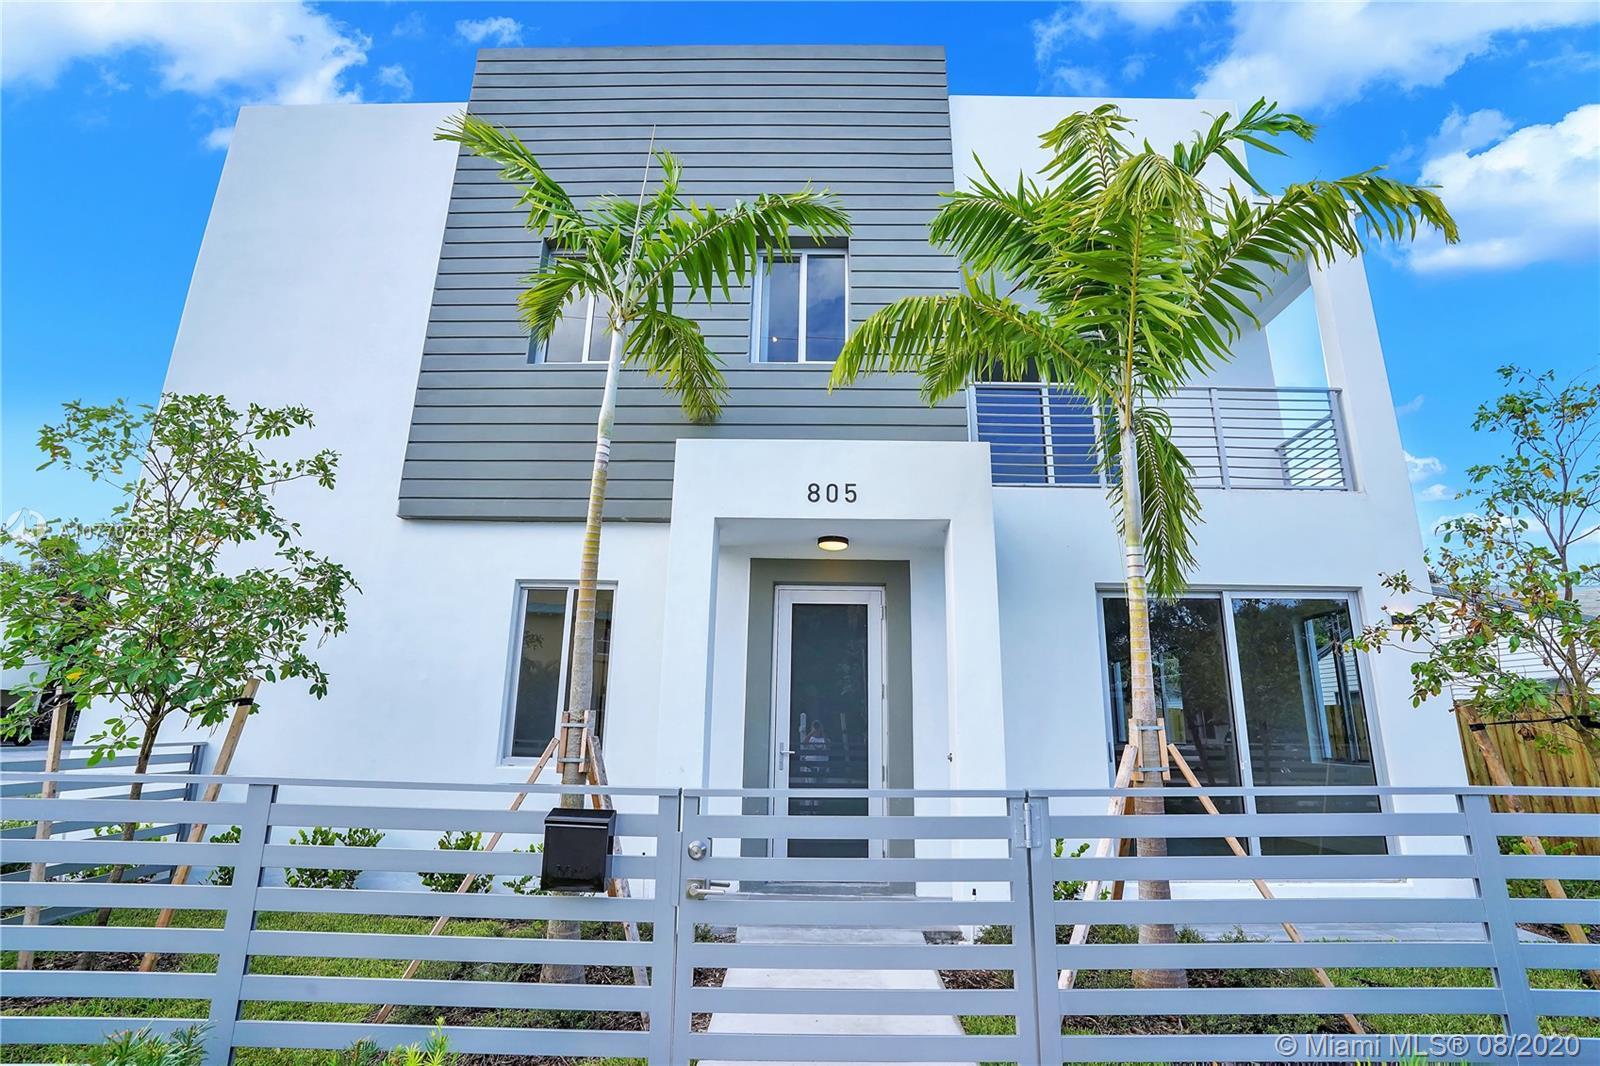 Newest townhouse in Fort Lauderdale can now be yours! 1922 SF under air. This will be a townhouse community of 4 units. 3 bedrooms, 2.5 bathrooms, 2 car garage, private backyard, beautiful finishes and layout. A great room with open layout and kitchen island. 3 bedrooms on 2nd floor. Garage, living room, powder room, dinning room and kitchen on first floor. Interior pictures are for idea purposes, layout and finishes might be slightly different. Estimated completion September 2020.